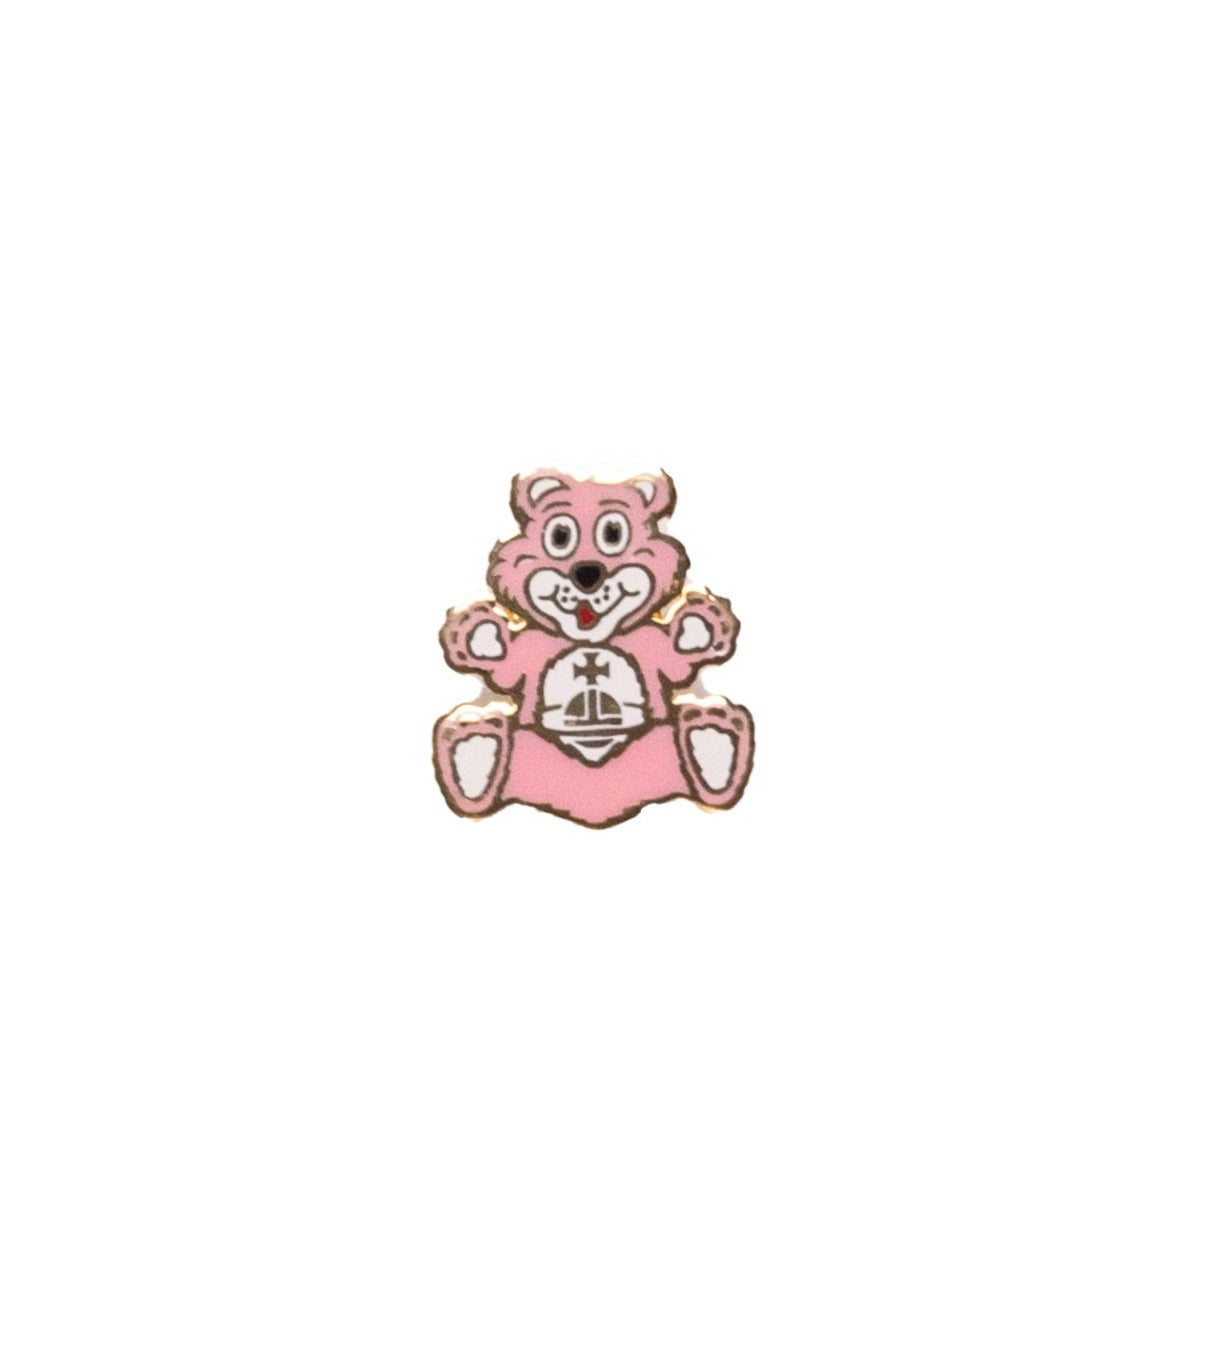 Vivienne Westwood <br> Enamel teddy bear orb logo pin badge